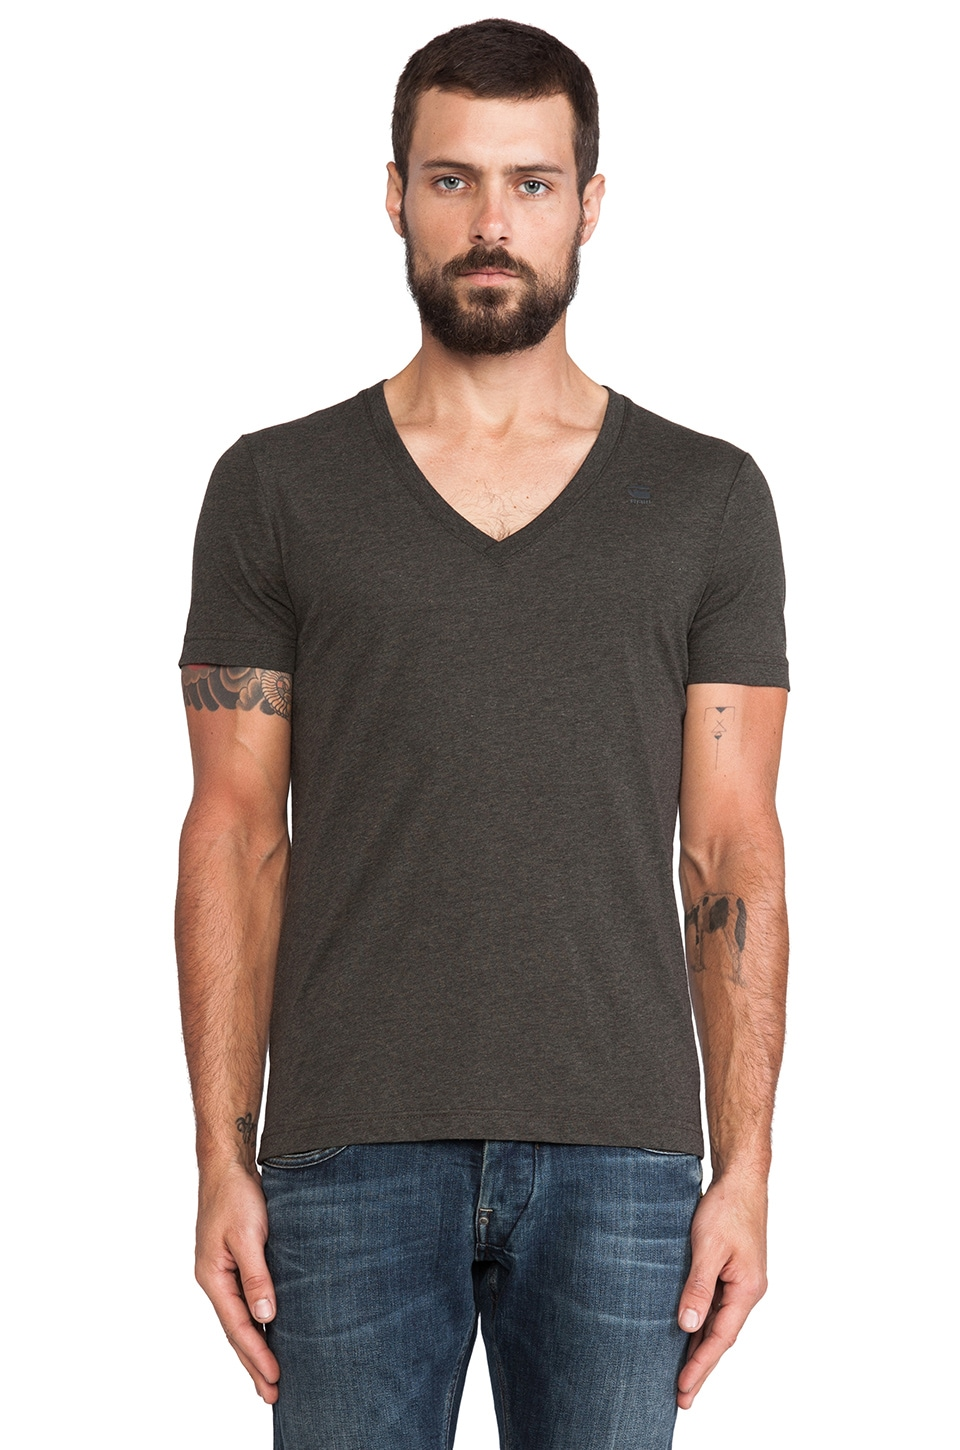 G-Star 2 Pack V-Neck in Asfalt Heather